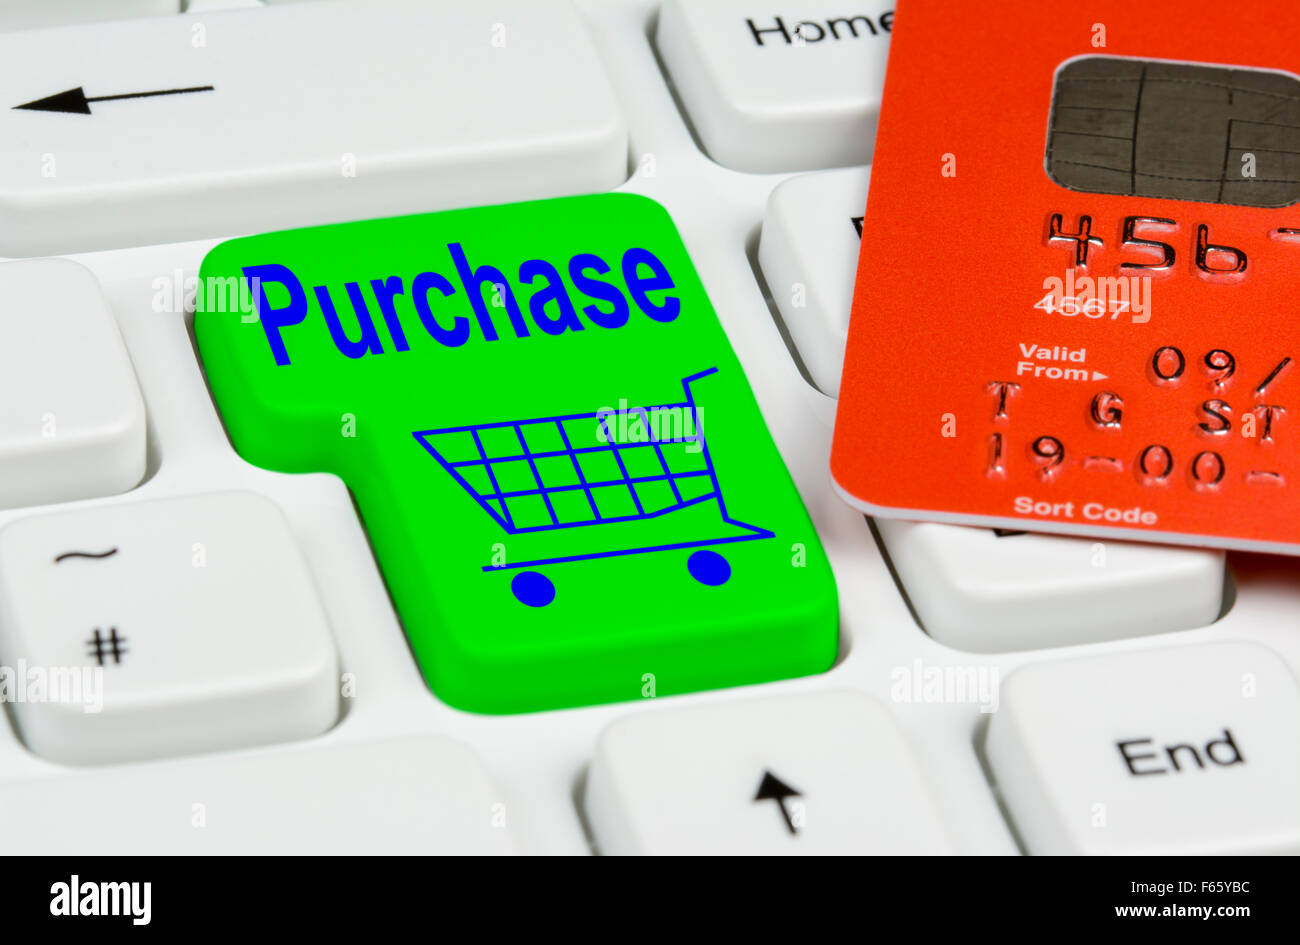 Online shopping button on a white computer keyboard.with payment card. - Stock Image